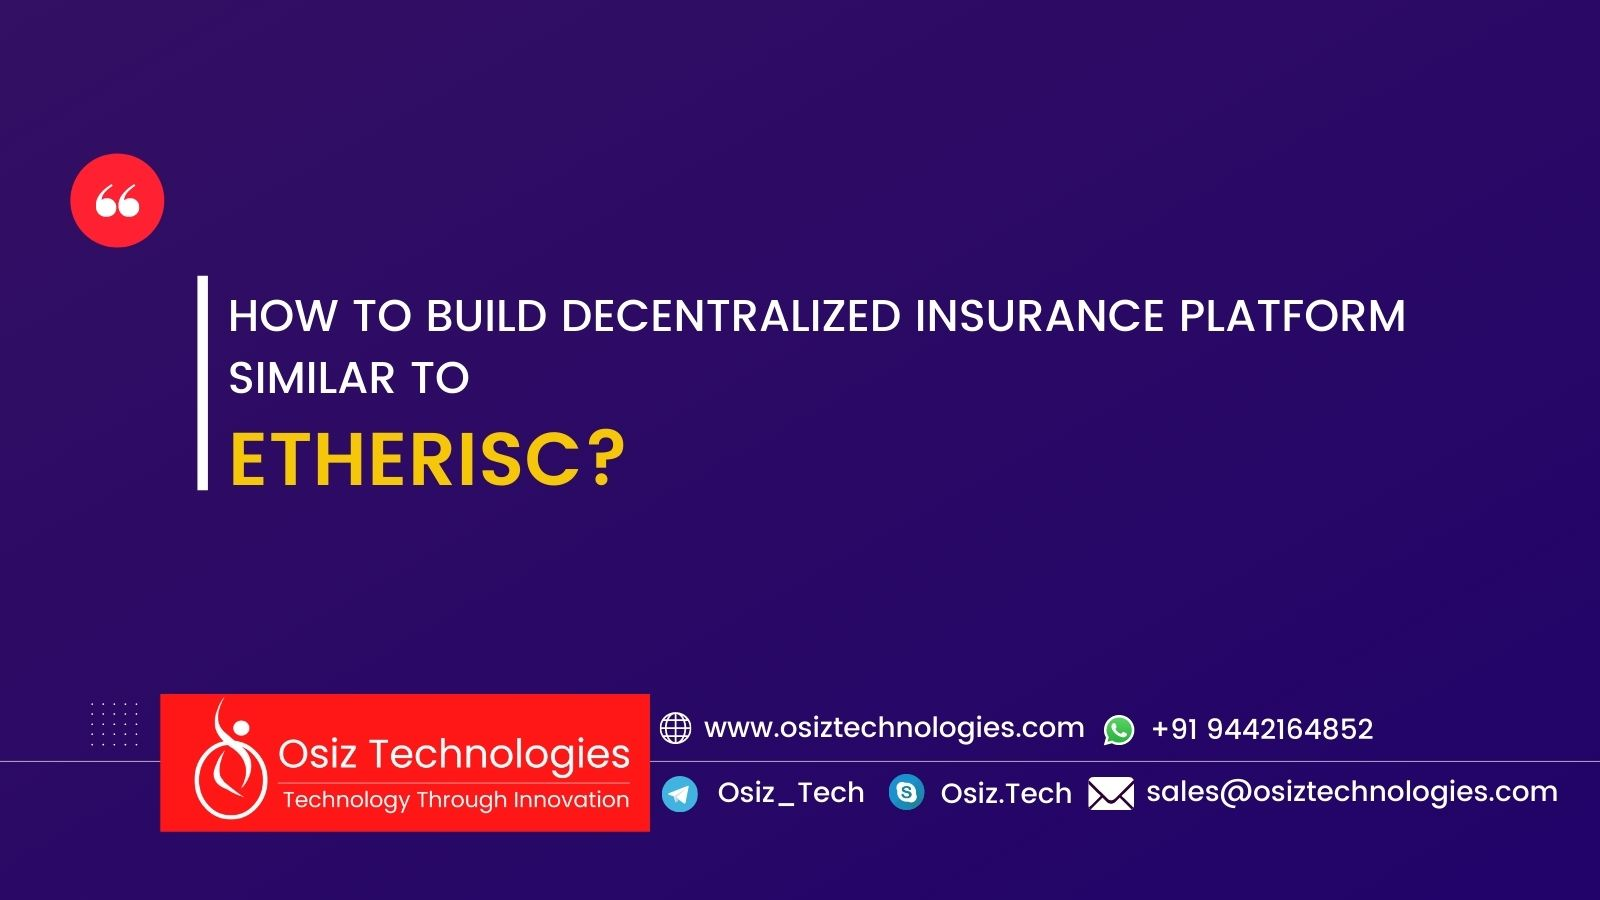 How to Build Decentralized Insurance Platform Similar to Etherisc?